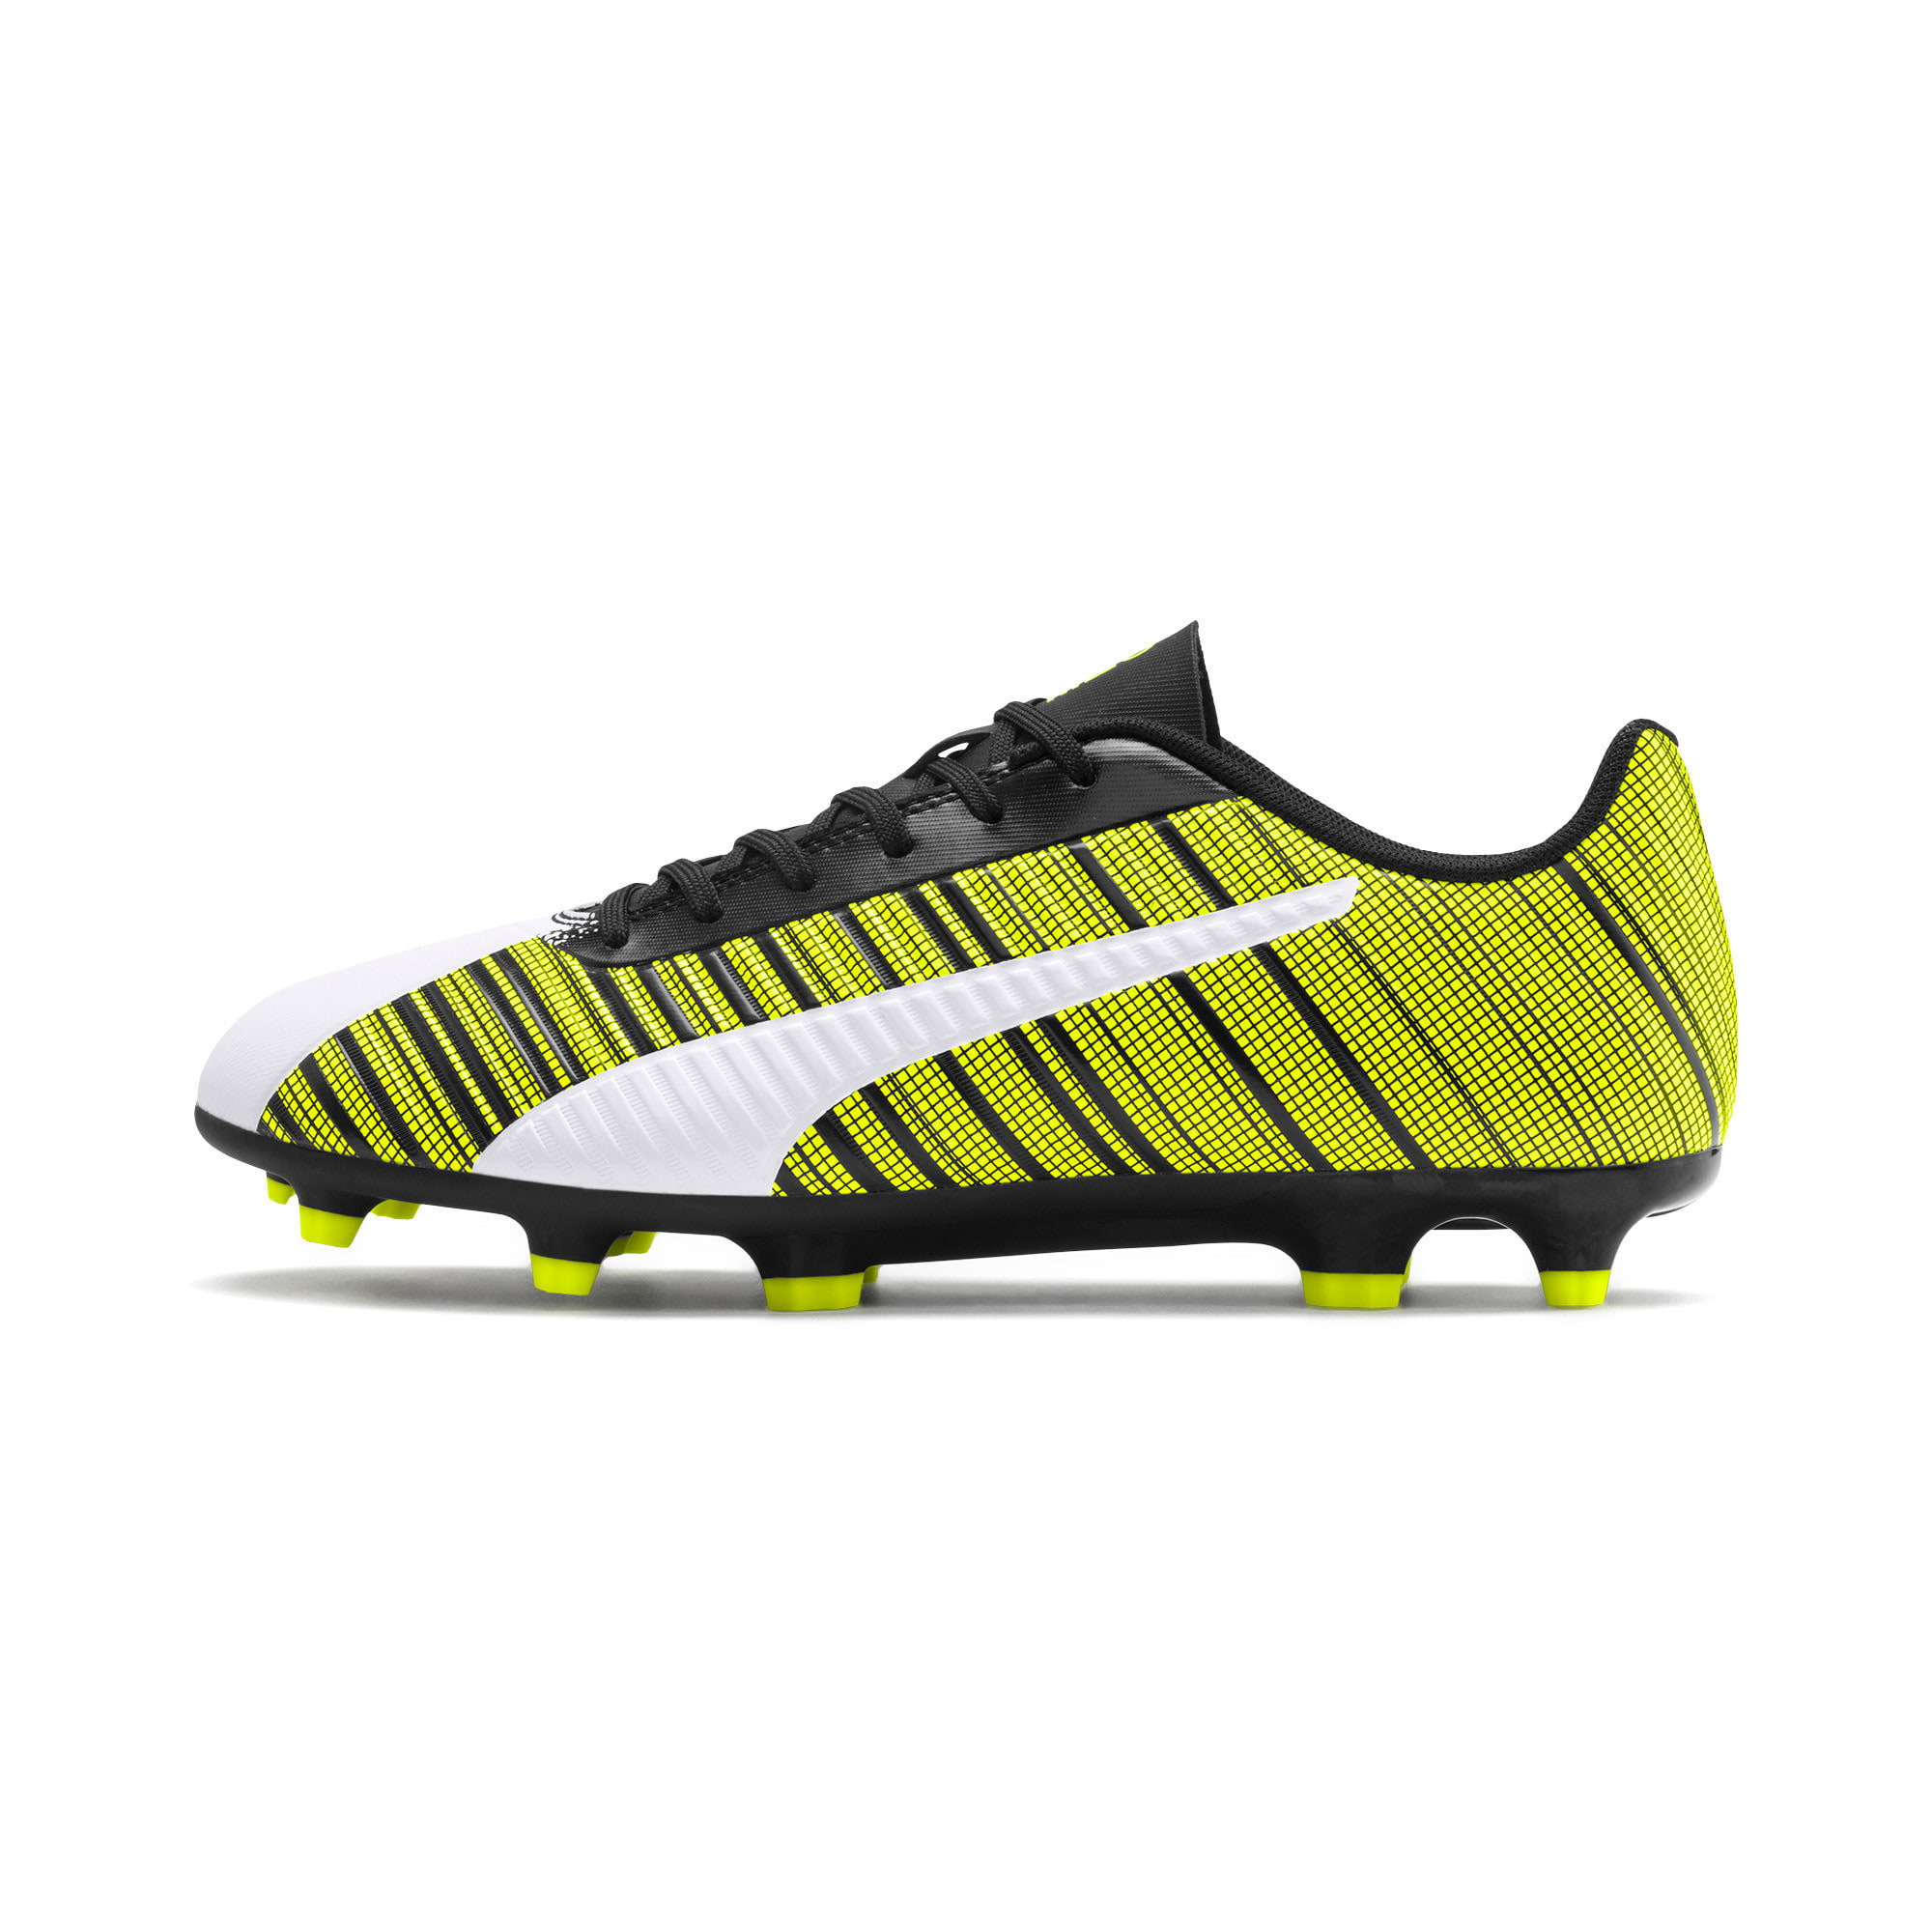 Thumbnail 1 of PUMA ONE 5.4 Men's FG/AG Football Boots, White-Black-Yellow Alert, medium